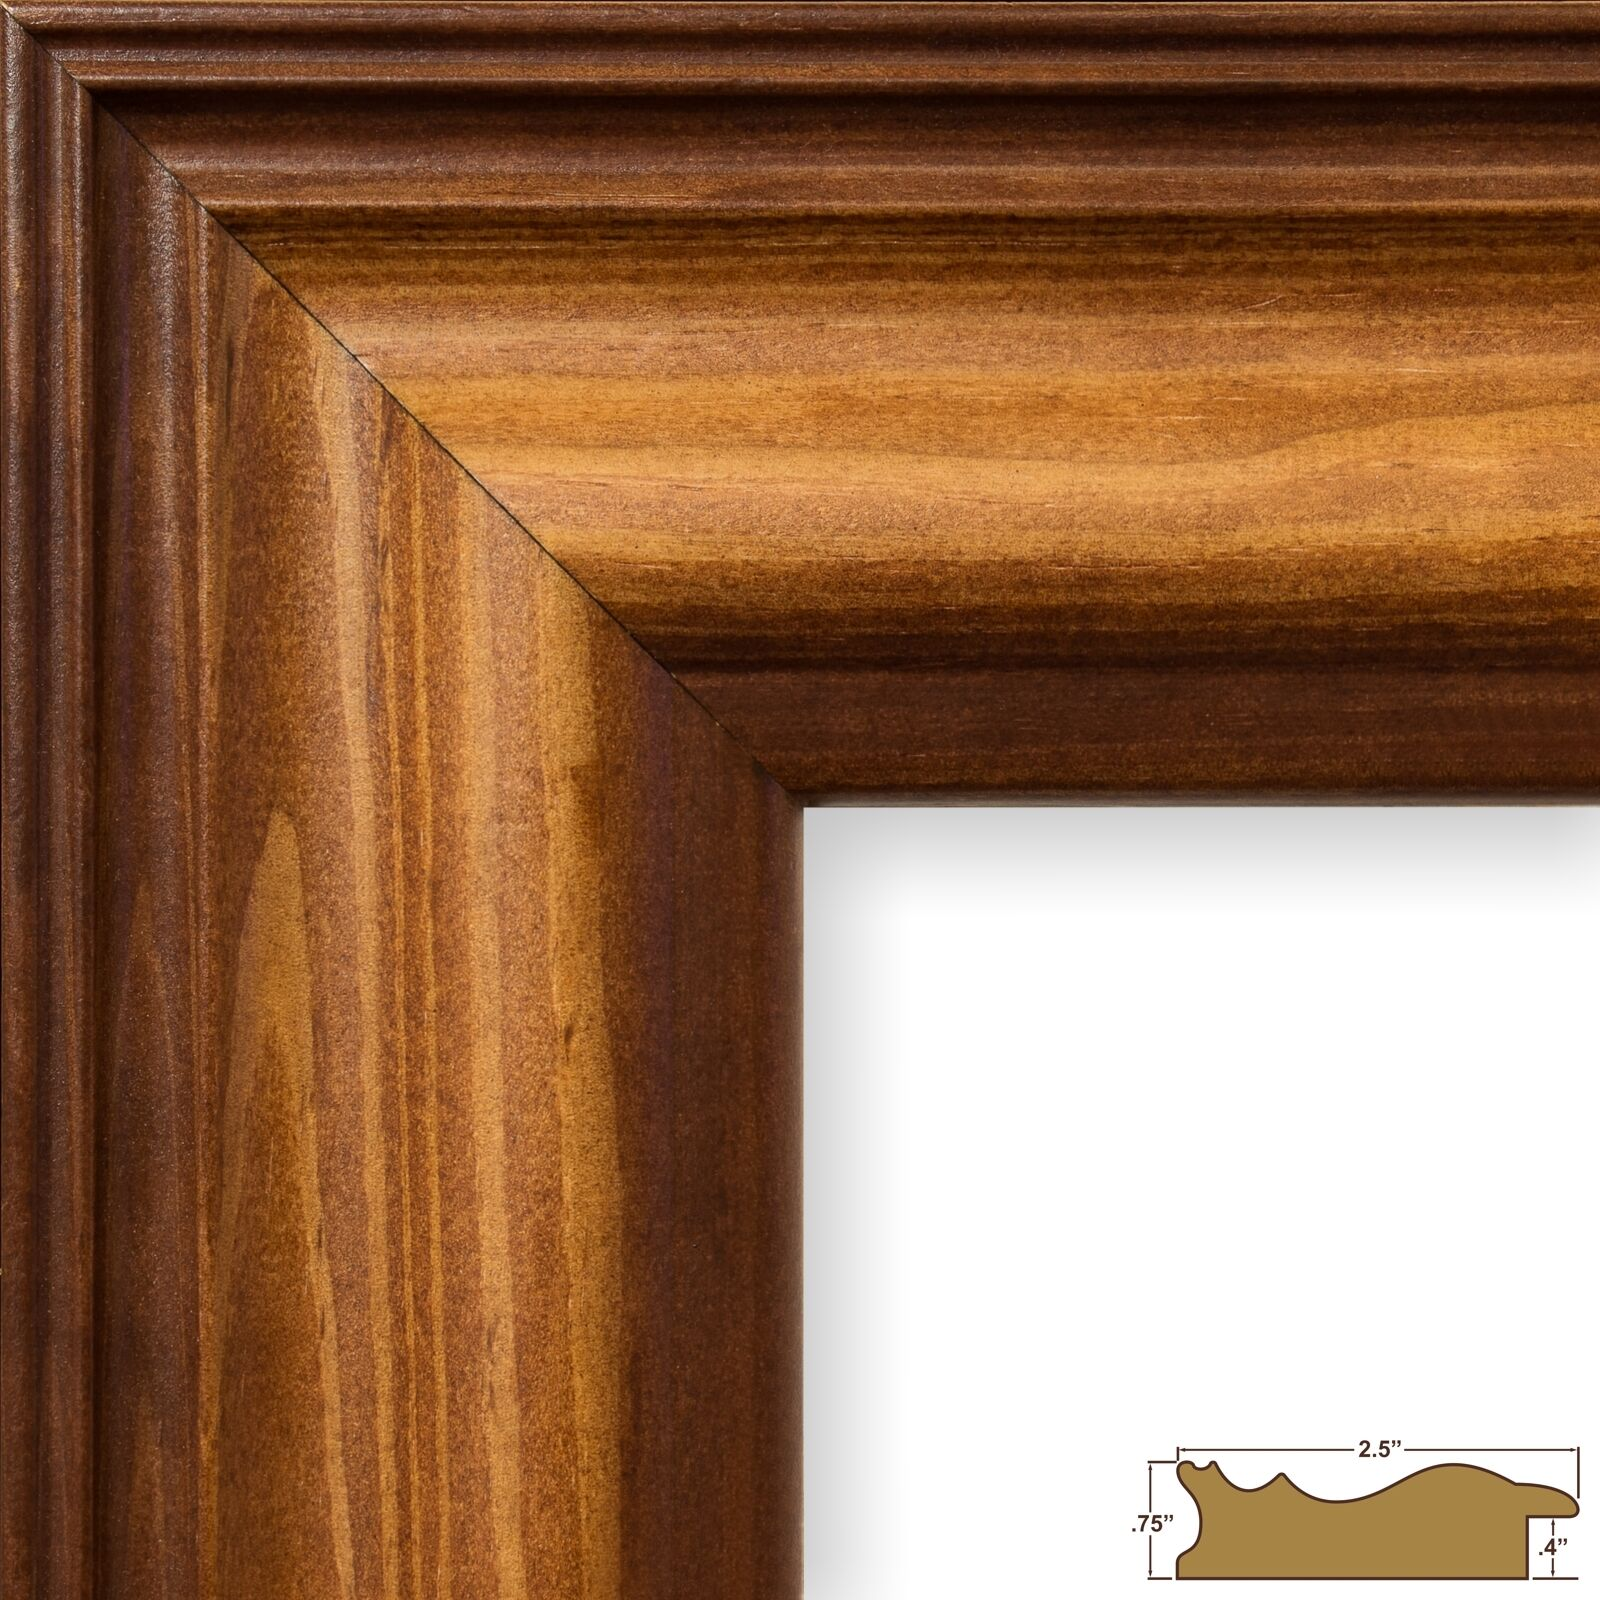 Craig frames americana walnut brown wood picture frame 1 single picture 1 of 10 jeuxipadfo Gallery